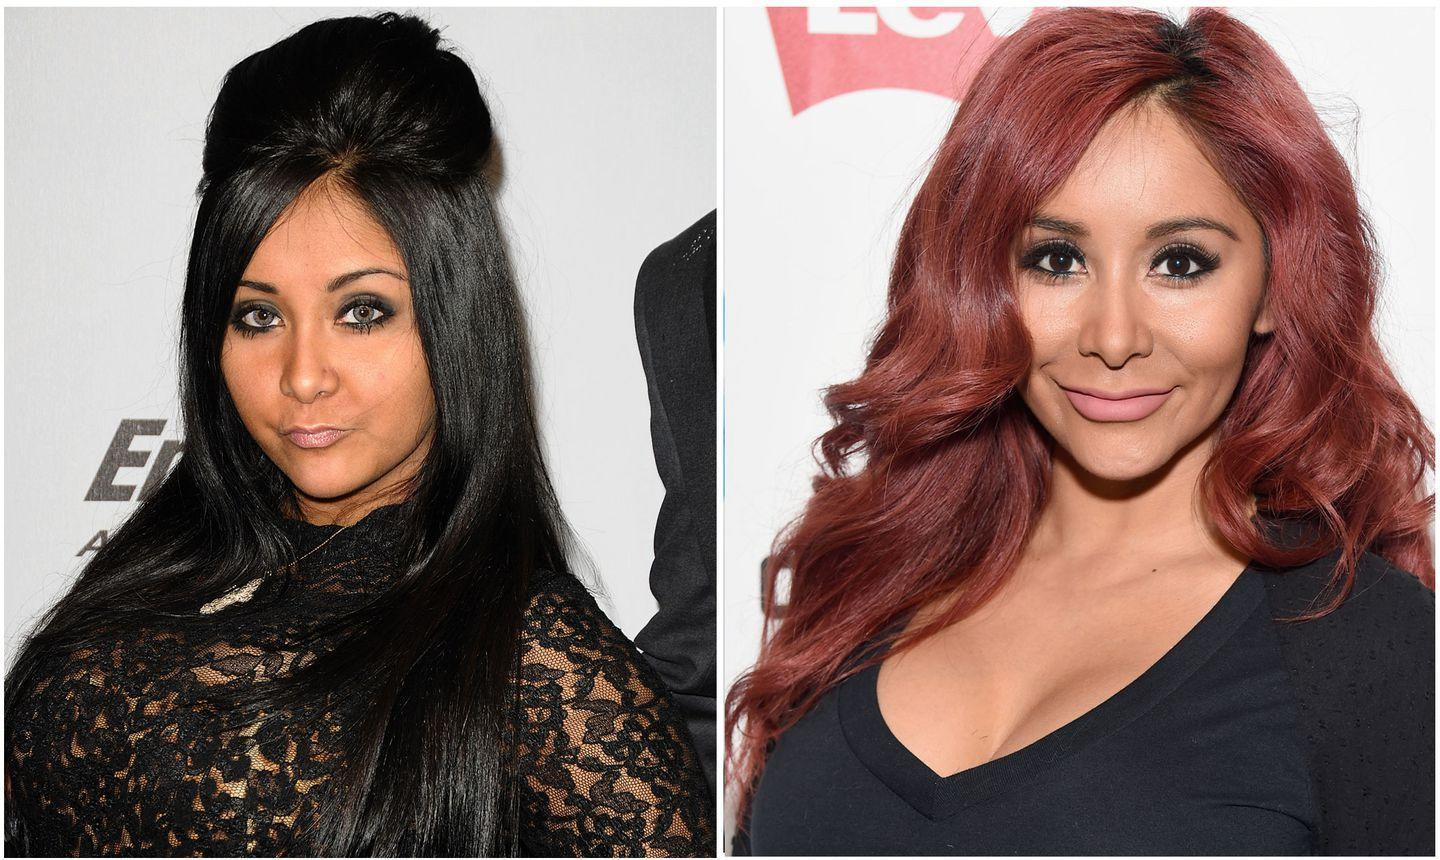 Snooki's Infamous 'Poof' Makes Grand Return In Hilarious New TikTok Challenge - Check It Out!